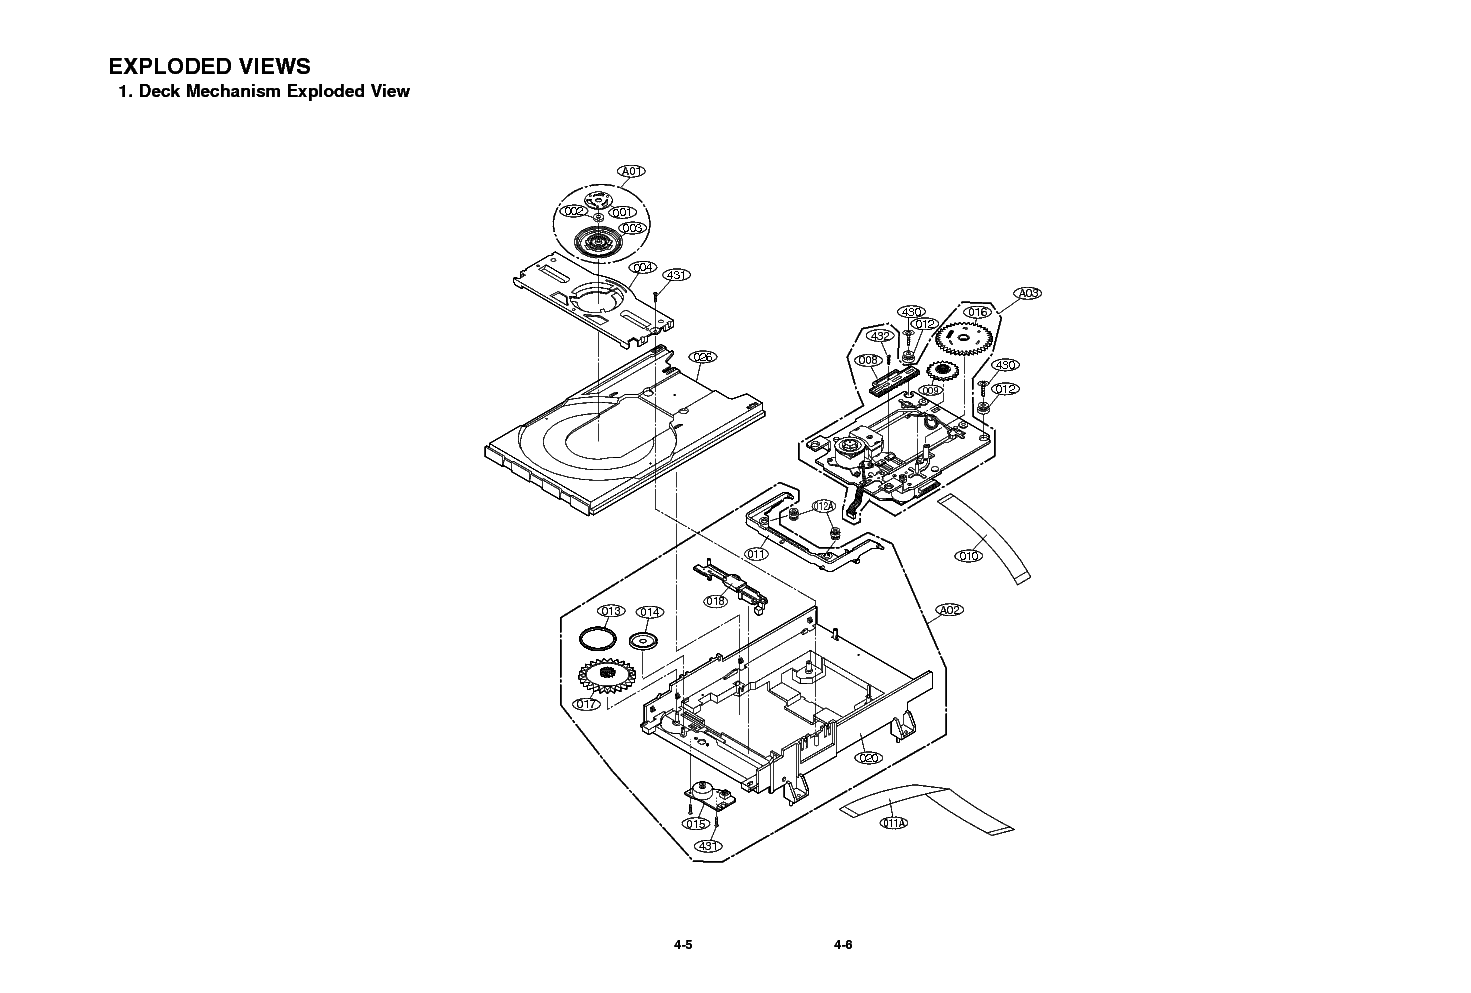 LG DVD 6812 EXPLODED VIEW Service Manual download